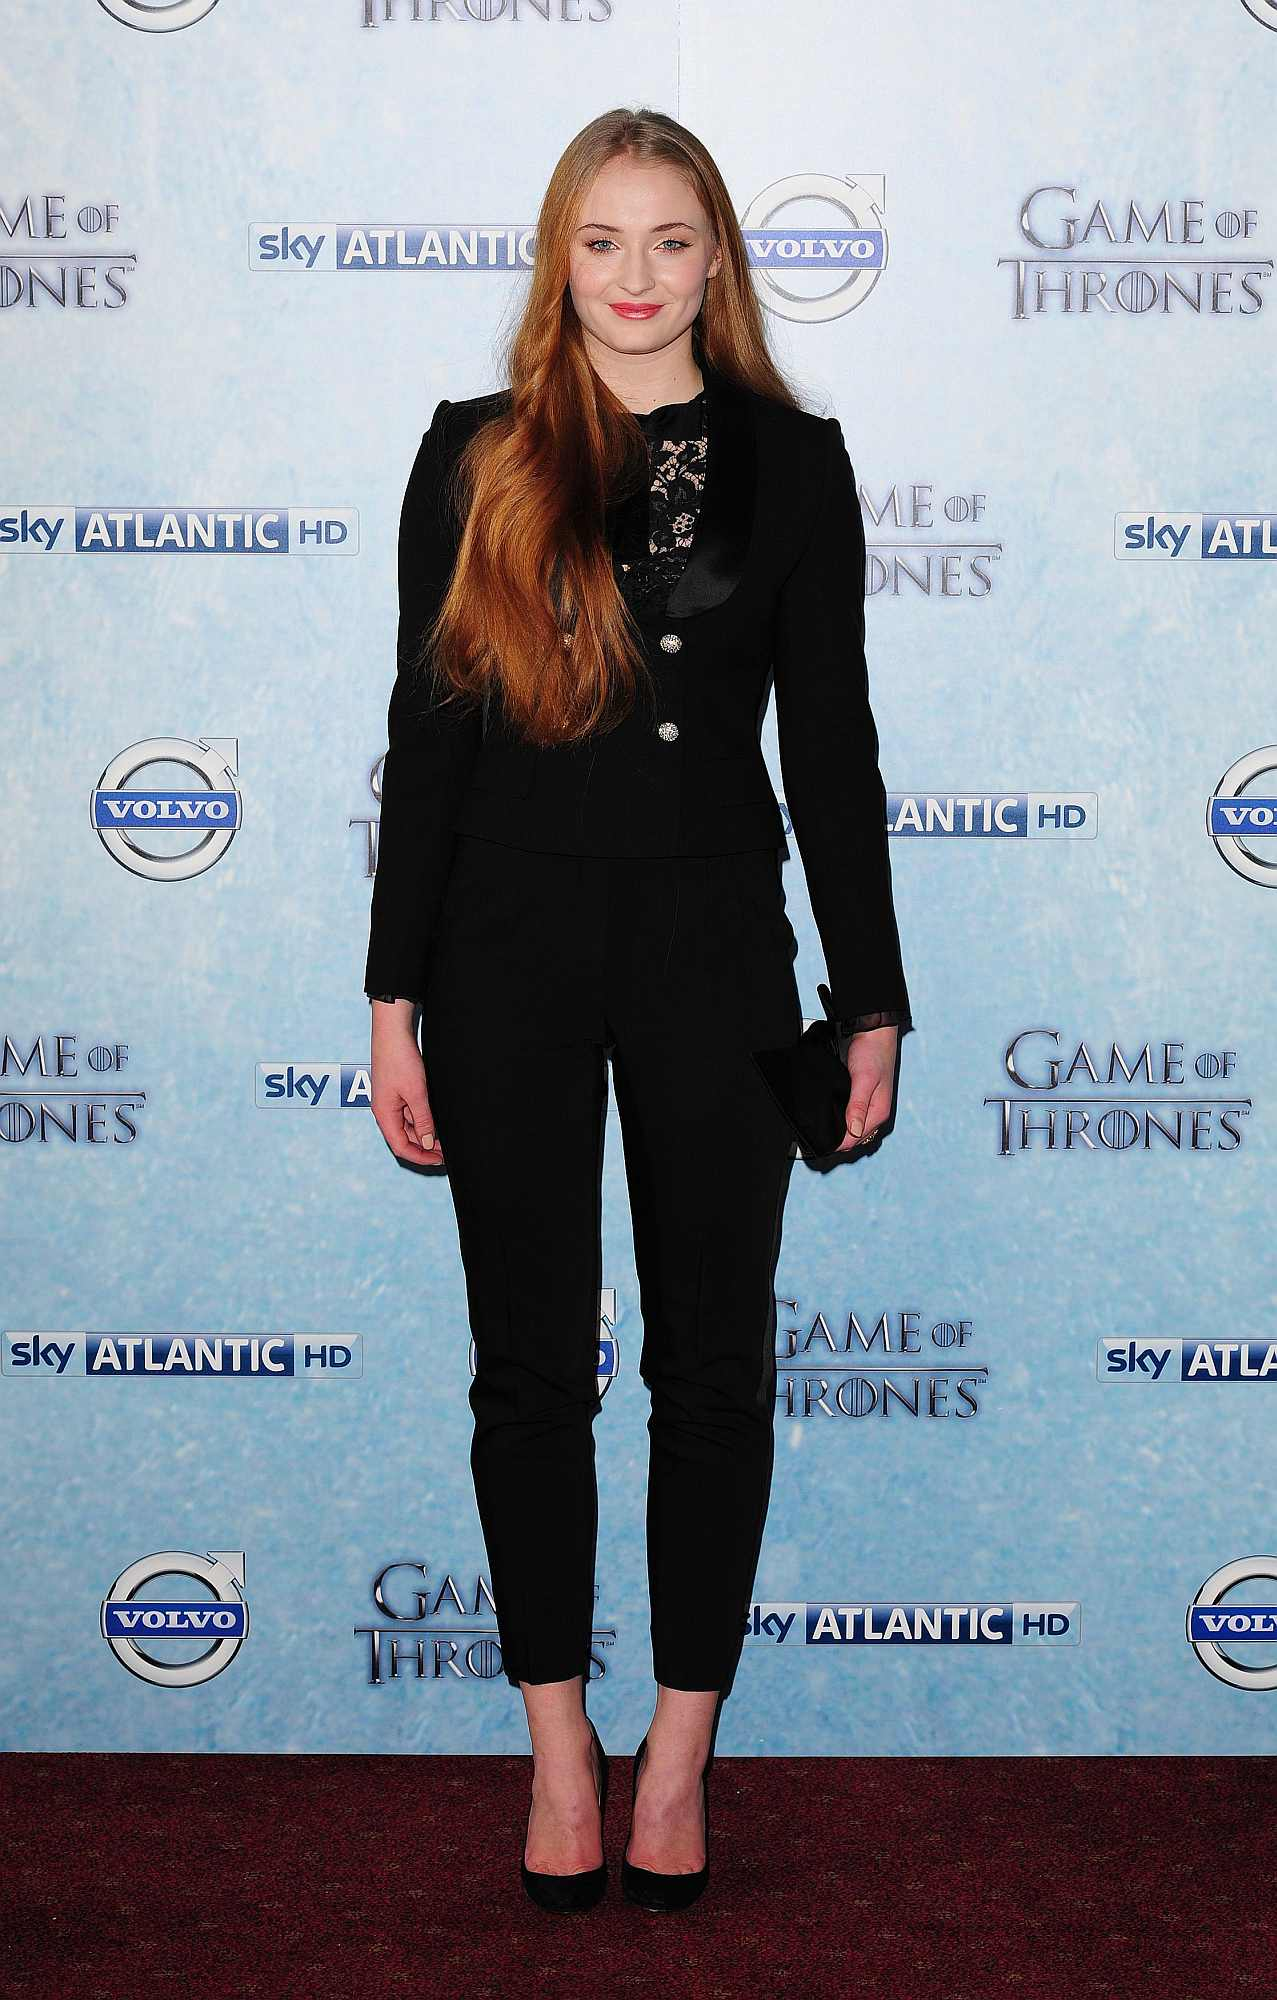 Sophie Turner attending Sky Atlantic's premiere of the fourth season of Game of Thrones at The Guildhall, London.